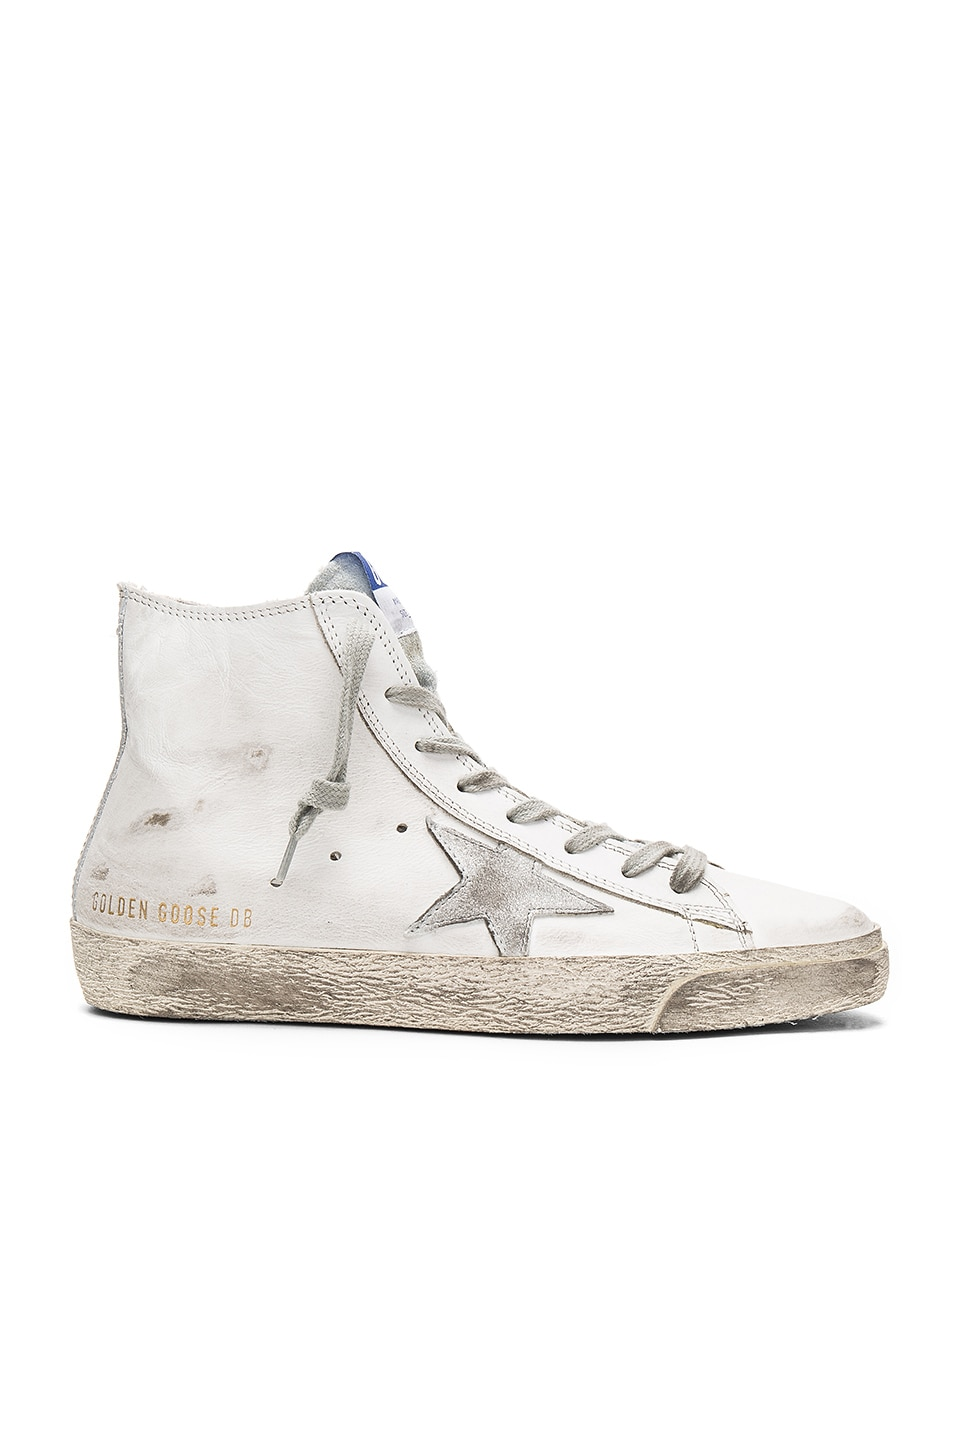 Golden Goose Francy Sneaker in White Silver Leather